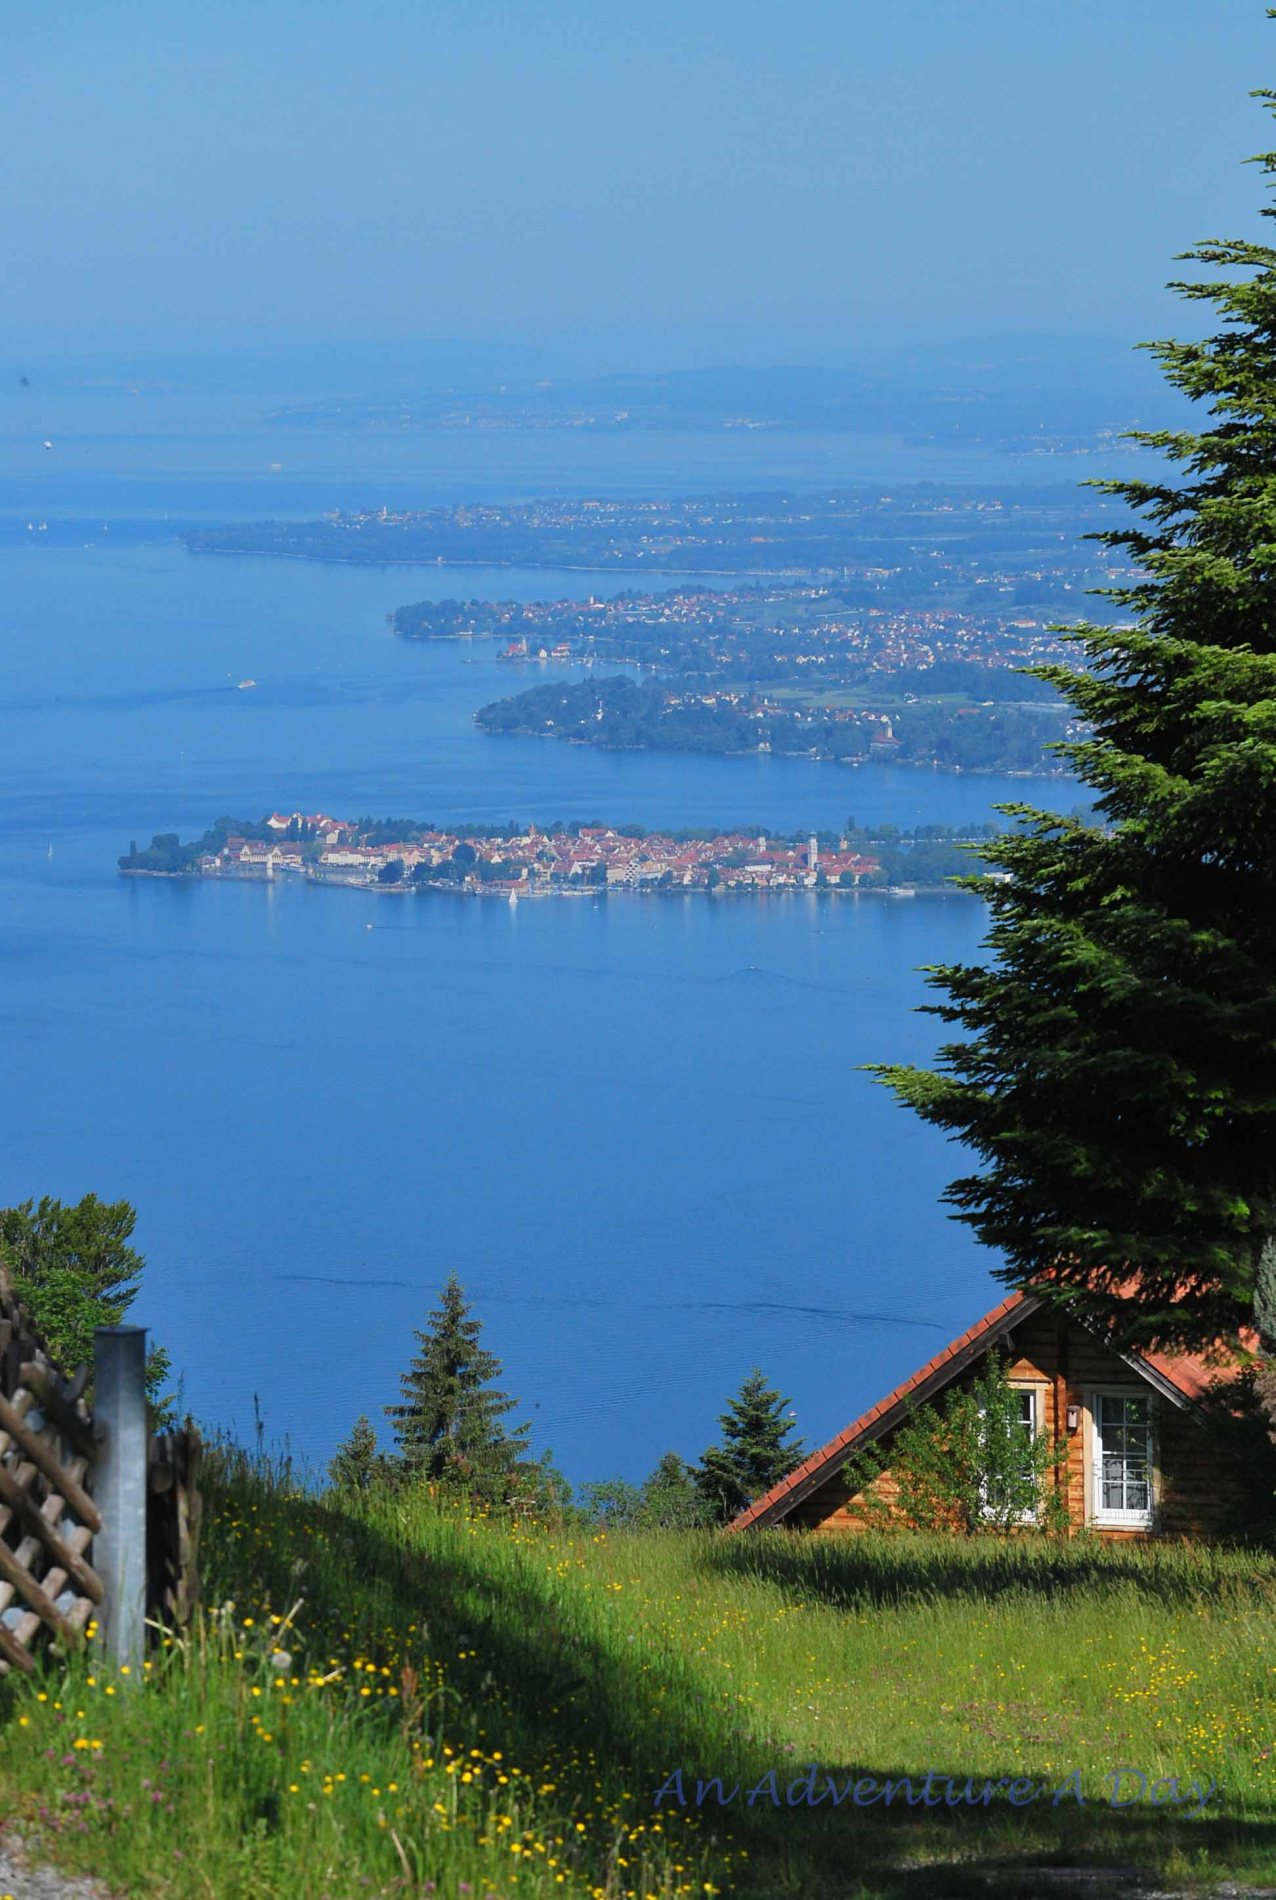 A view of the Bodensee (Lake Constance) from Pfänderalm near Bregenz, Austria.